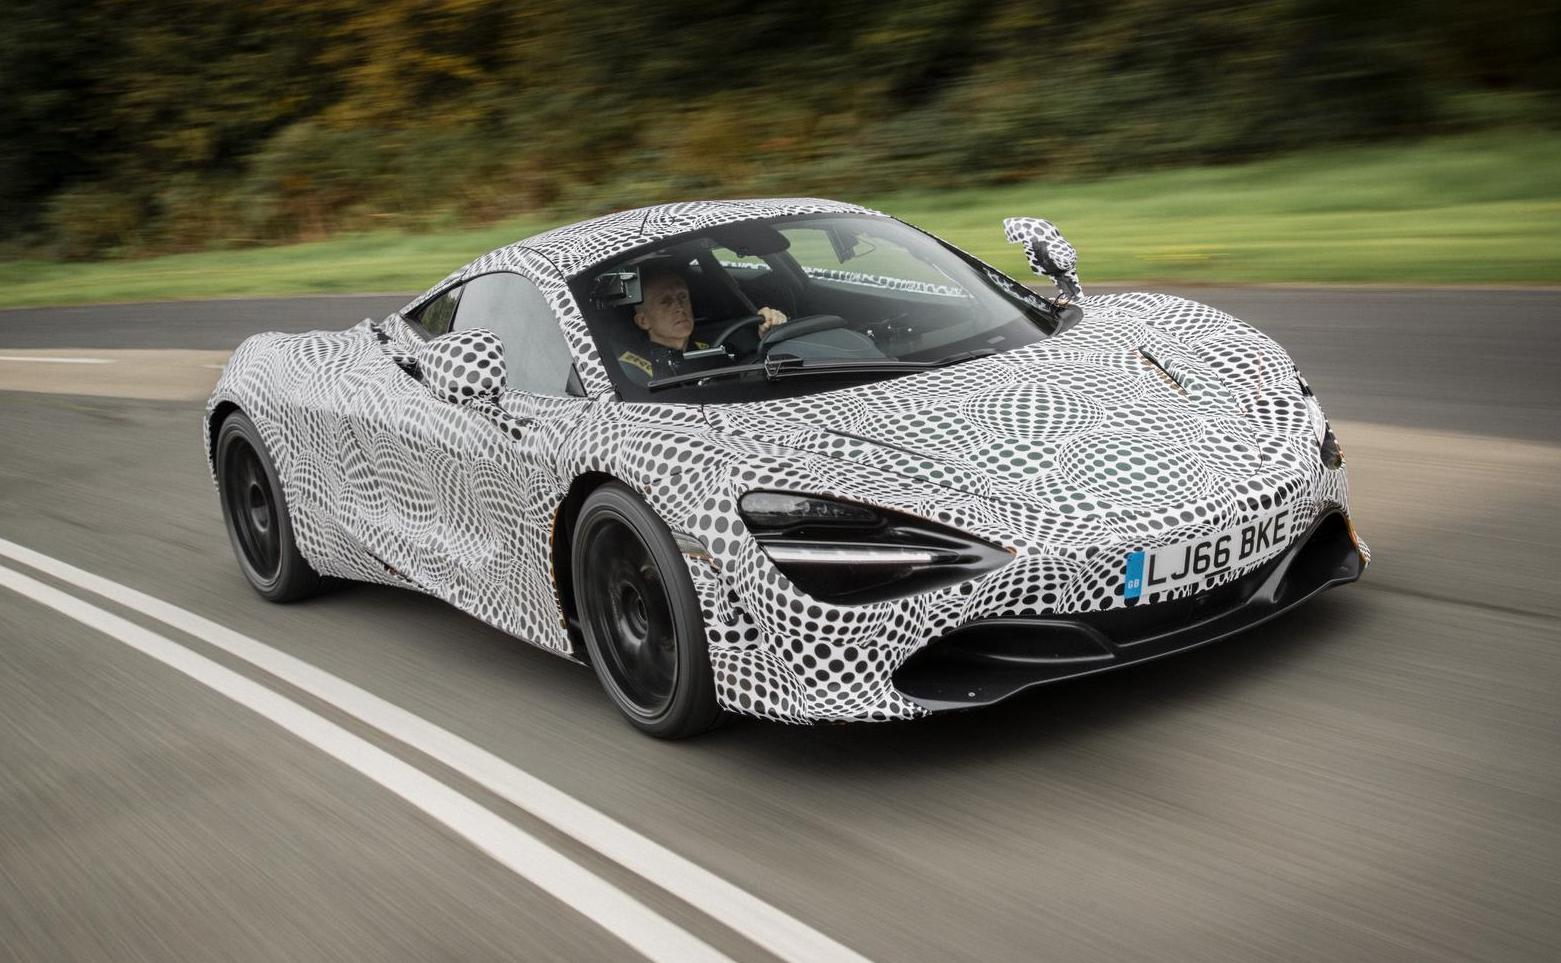 McLaren F1 successor starts testing on a 720S-based prototype